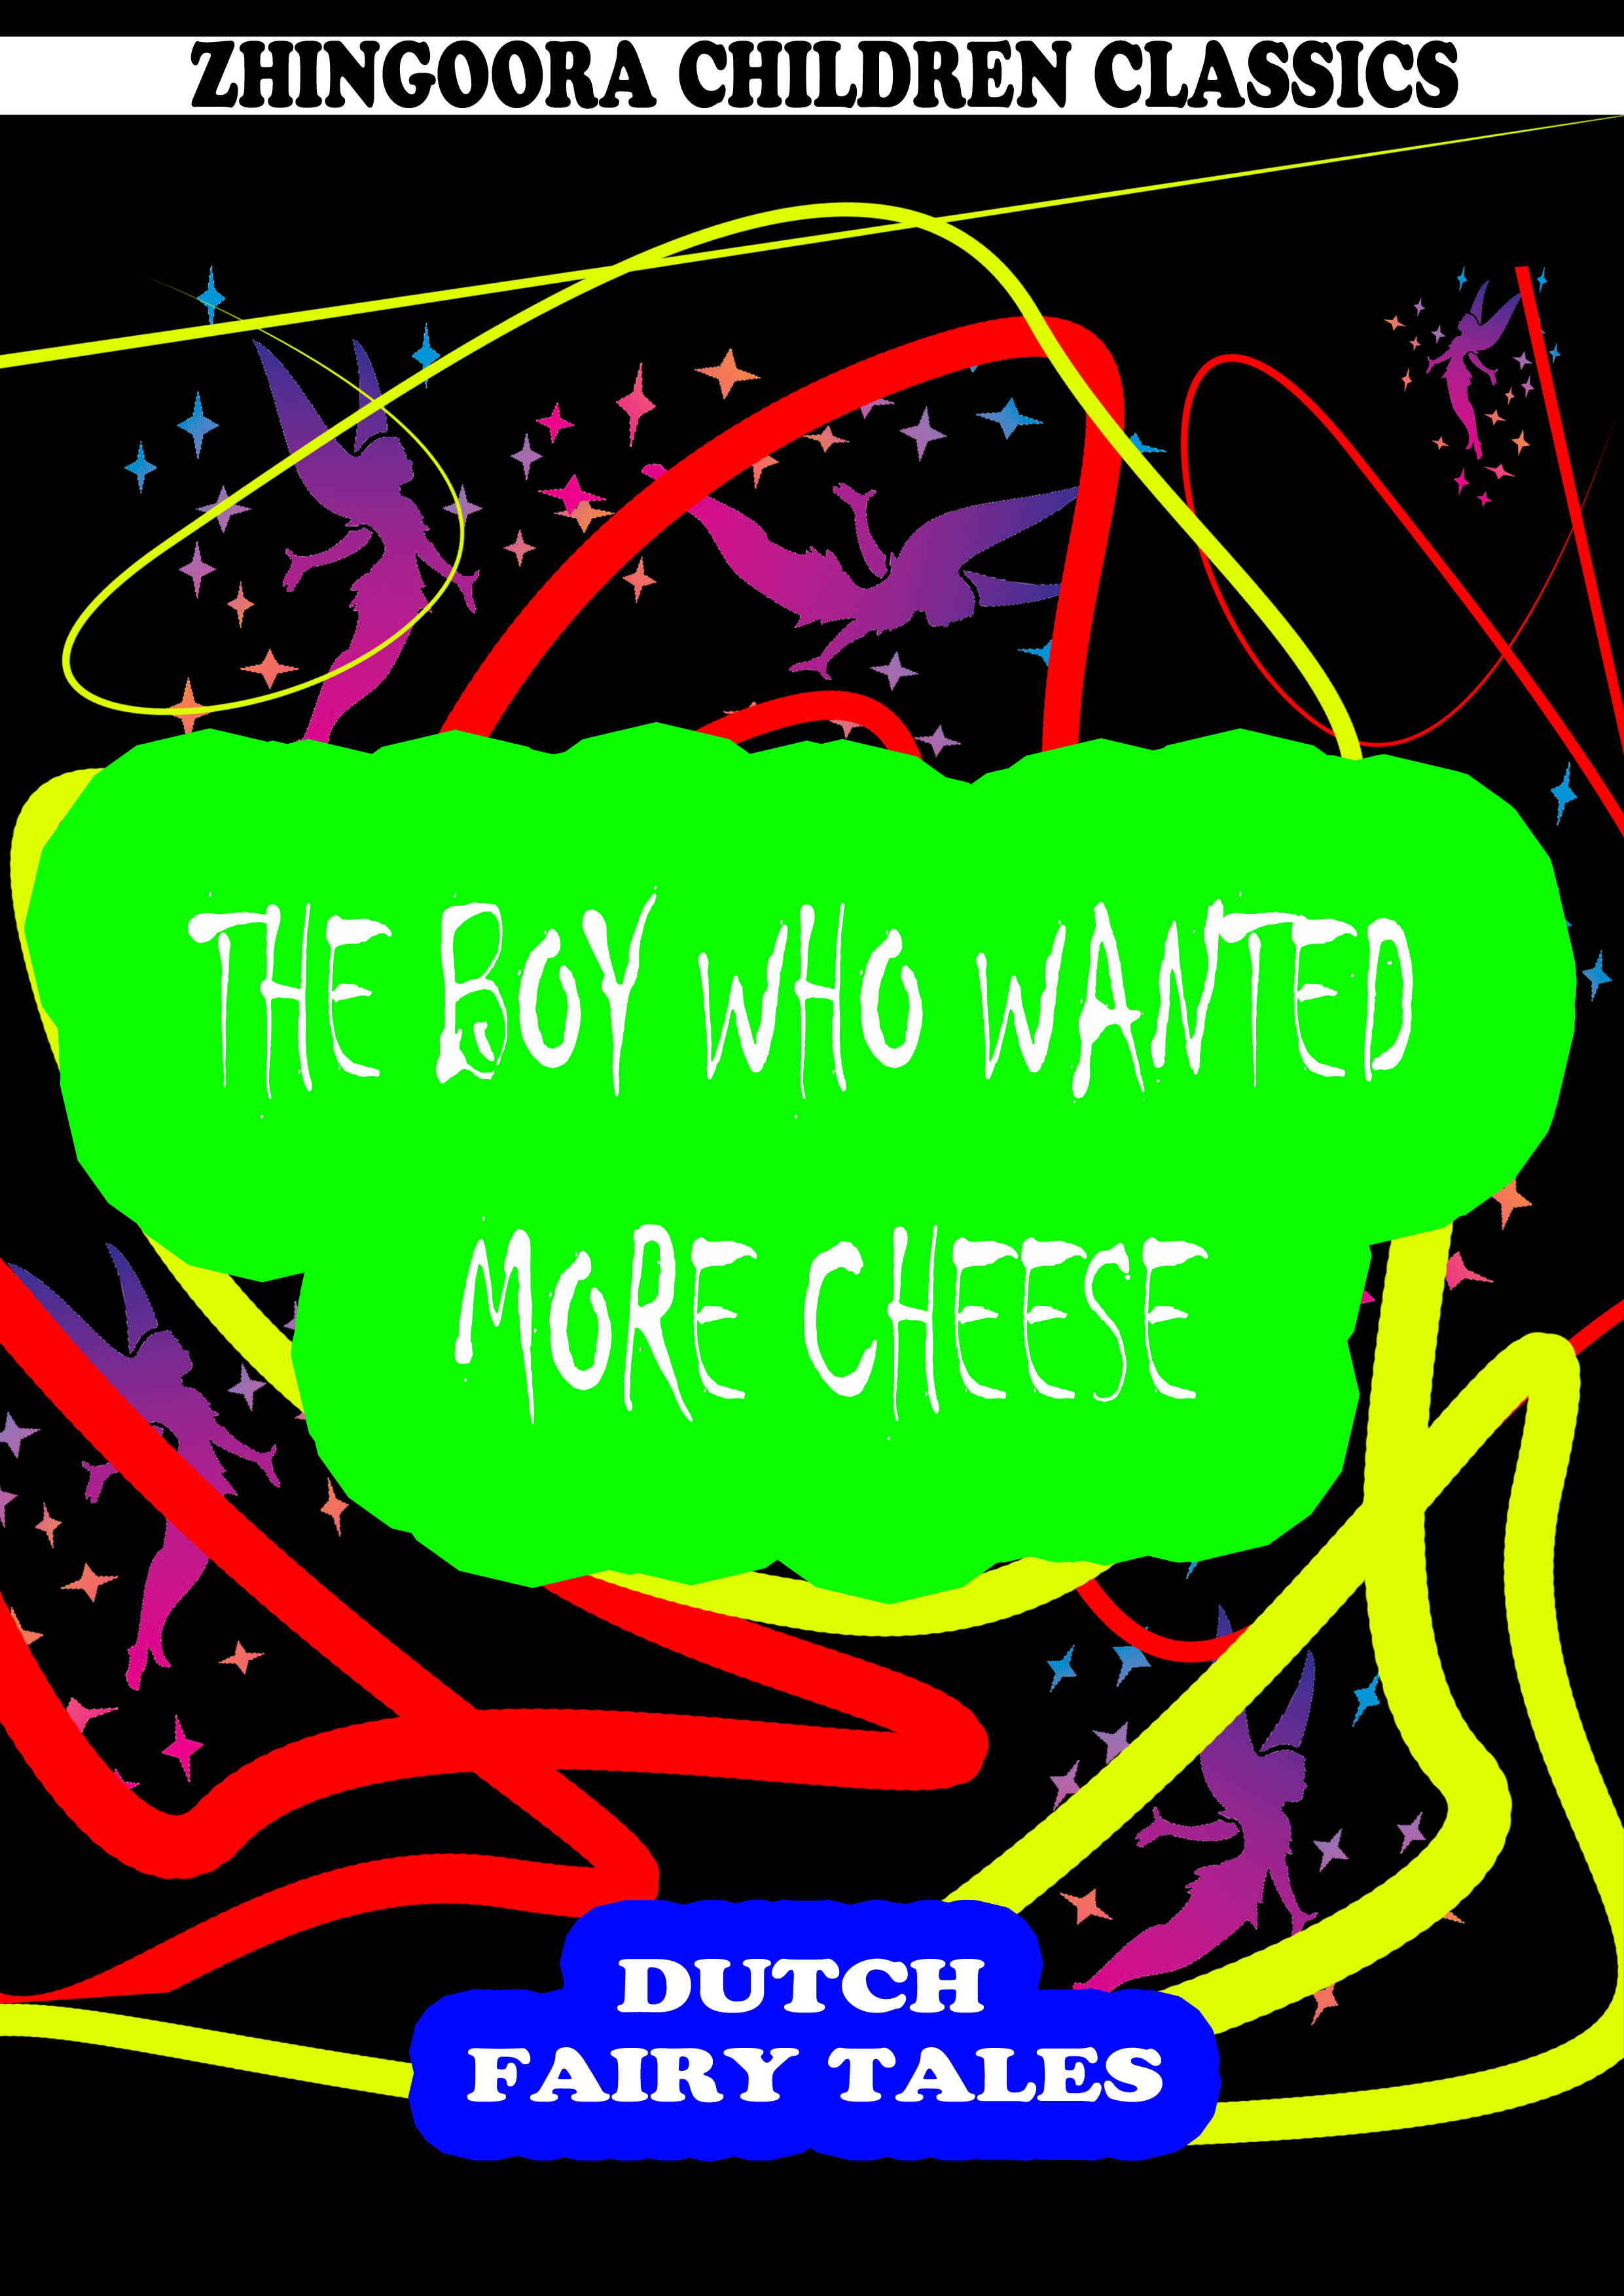 The Boy Who Wanted More Cheese